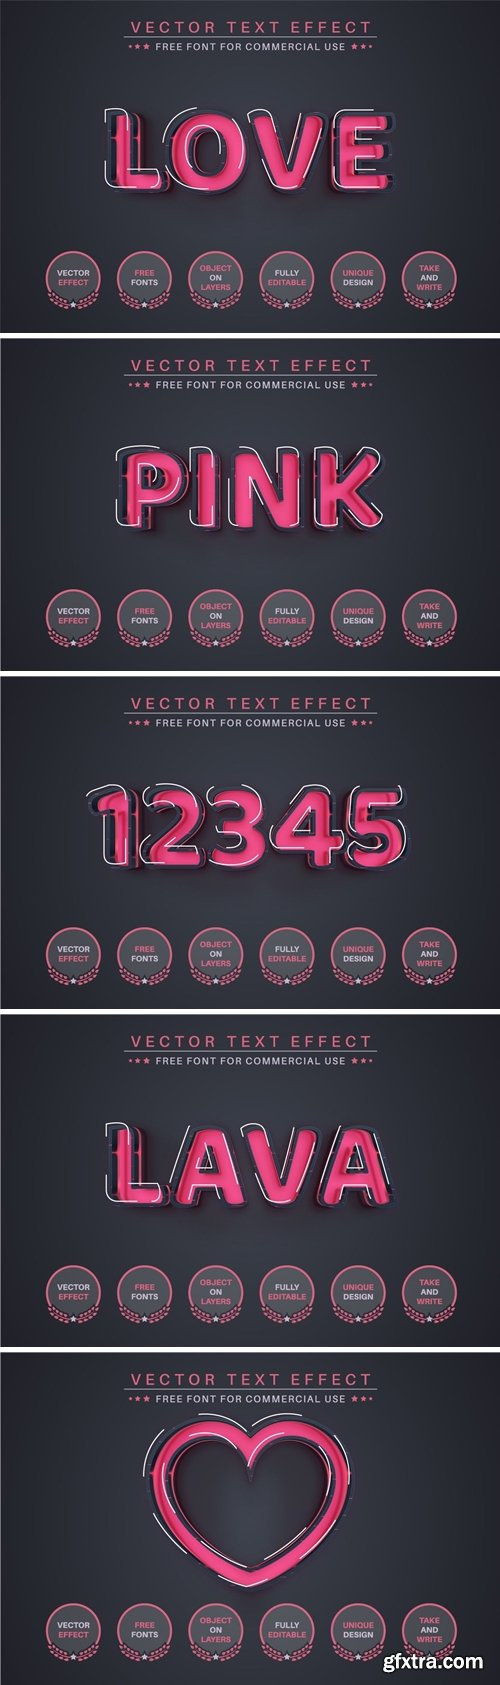 Love - Editable Text Effect, Font Style